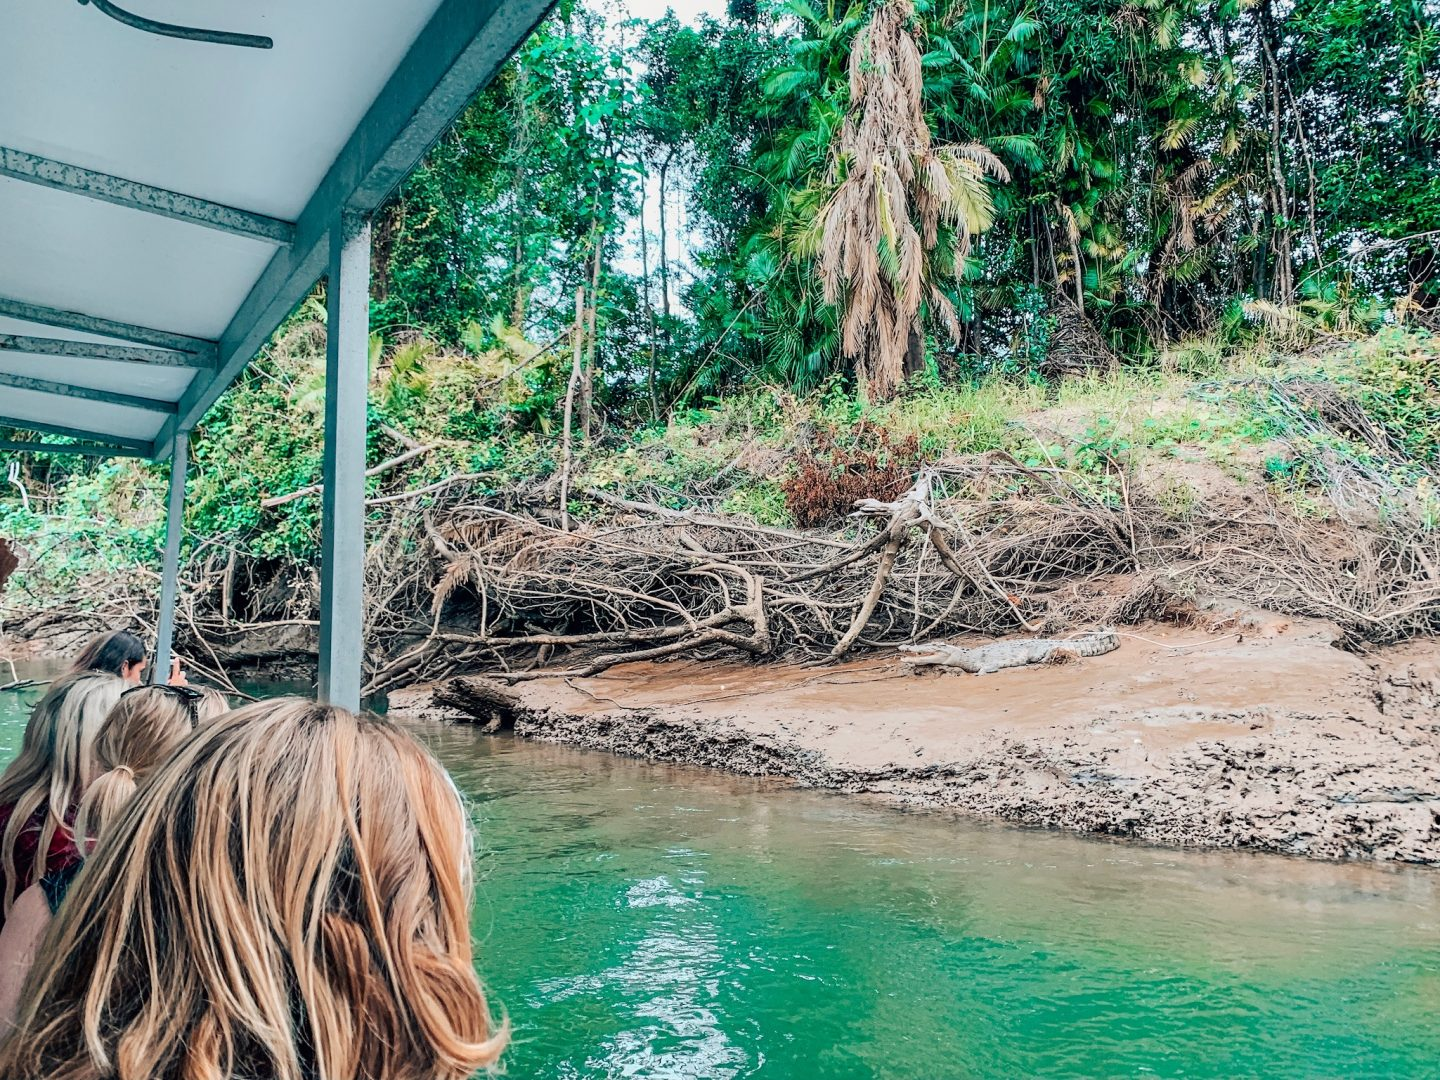 Looking for crocodiles on a Daintree River cruise